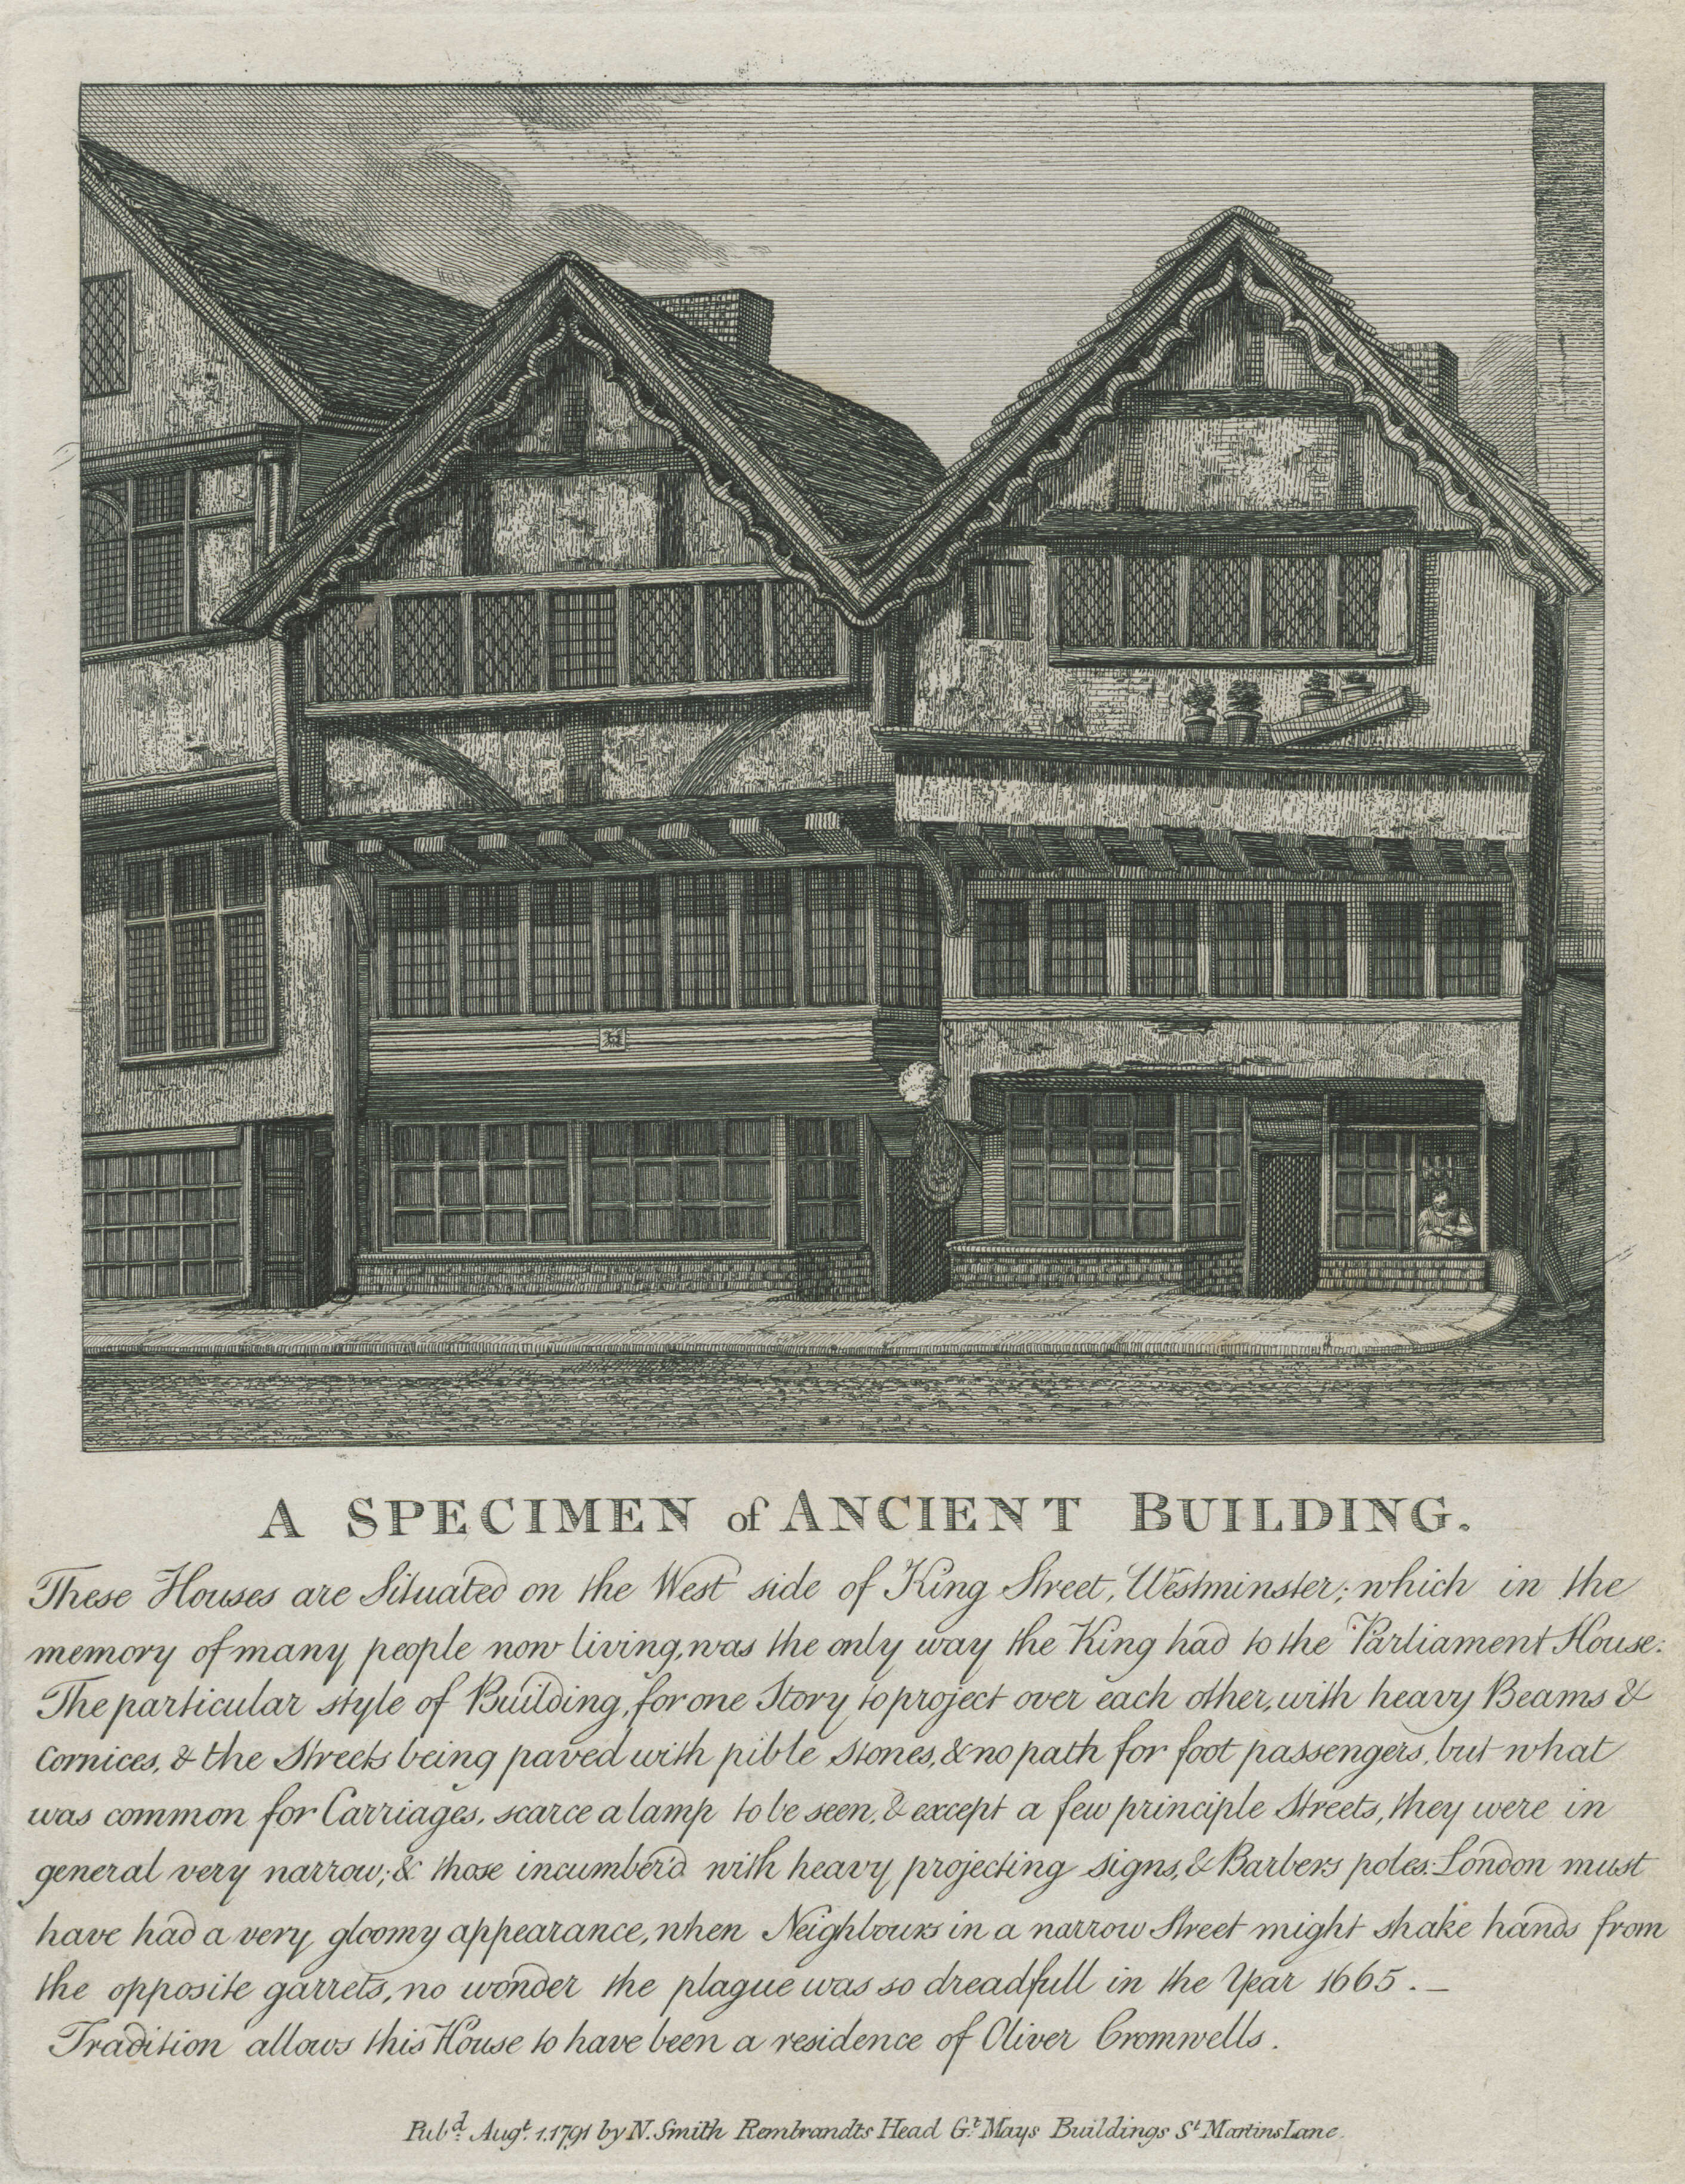 17-a-specimen-of-ancient-building-king-street-westminster